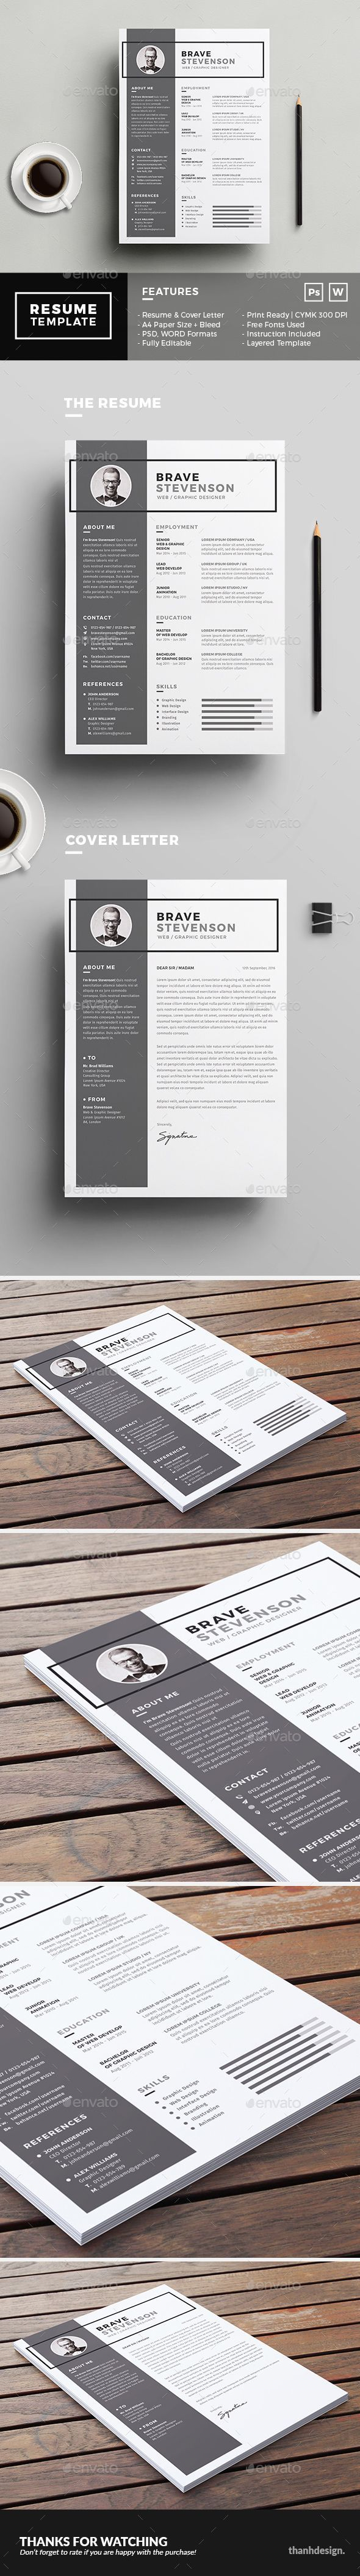 The Resume Template PSD MS Word Download